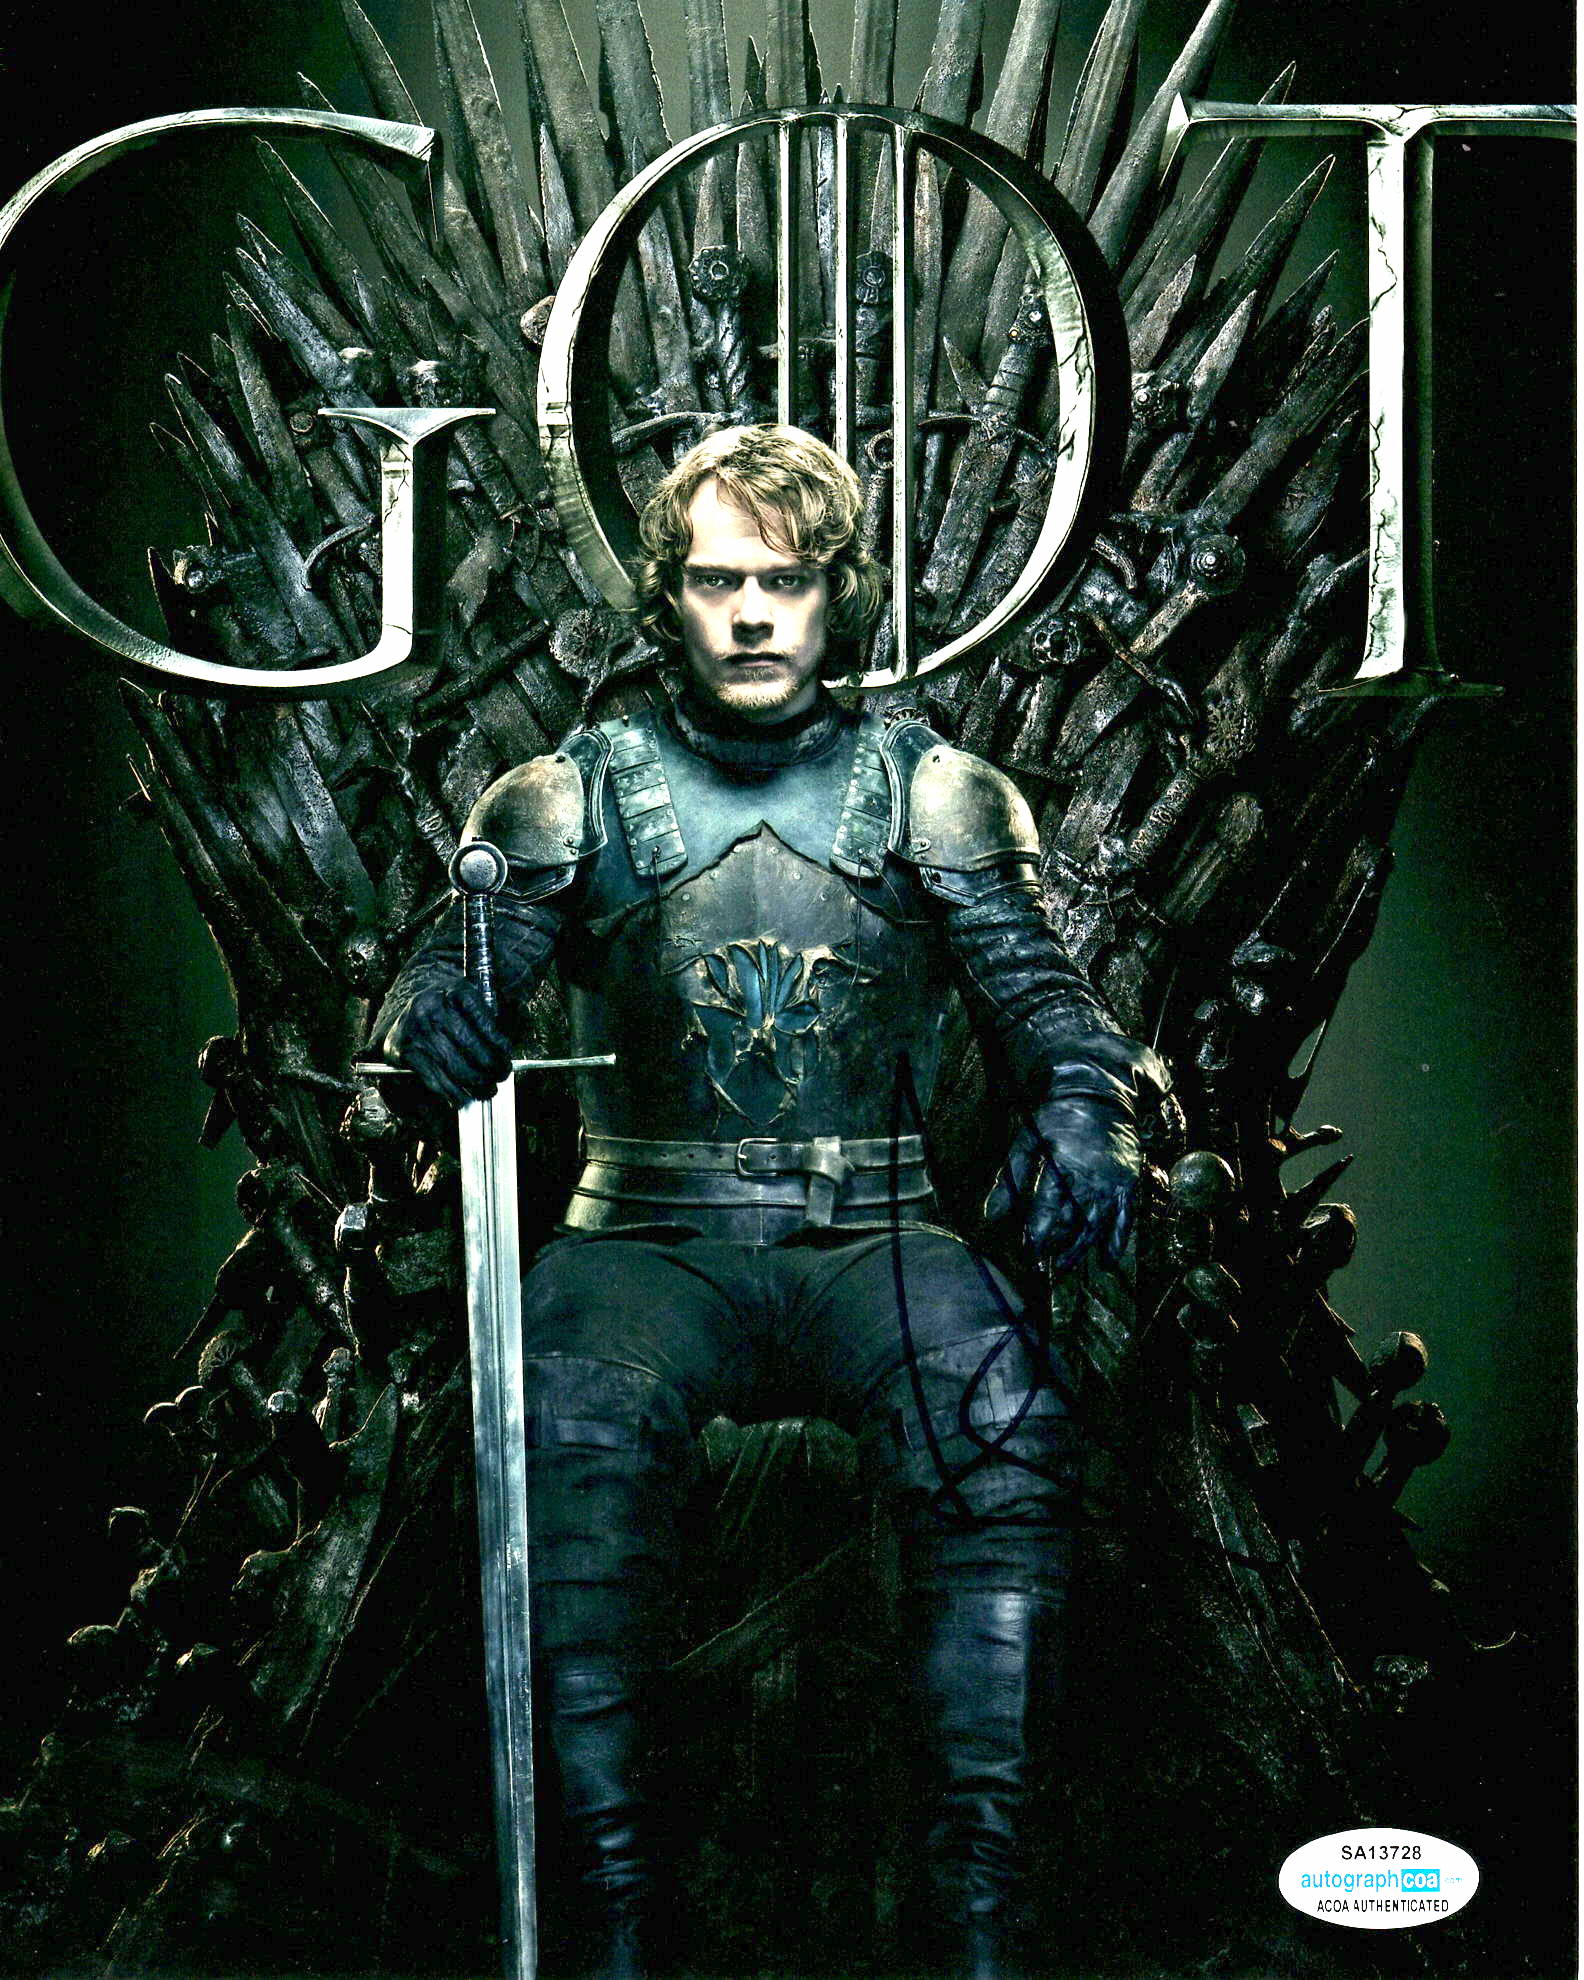 Alfie Allen Game of Thrones Signed Autograph 8x10 Photo #3 - Outlaw Hobbies Authentic Autographs